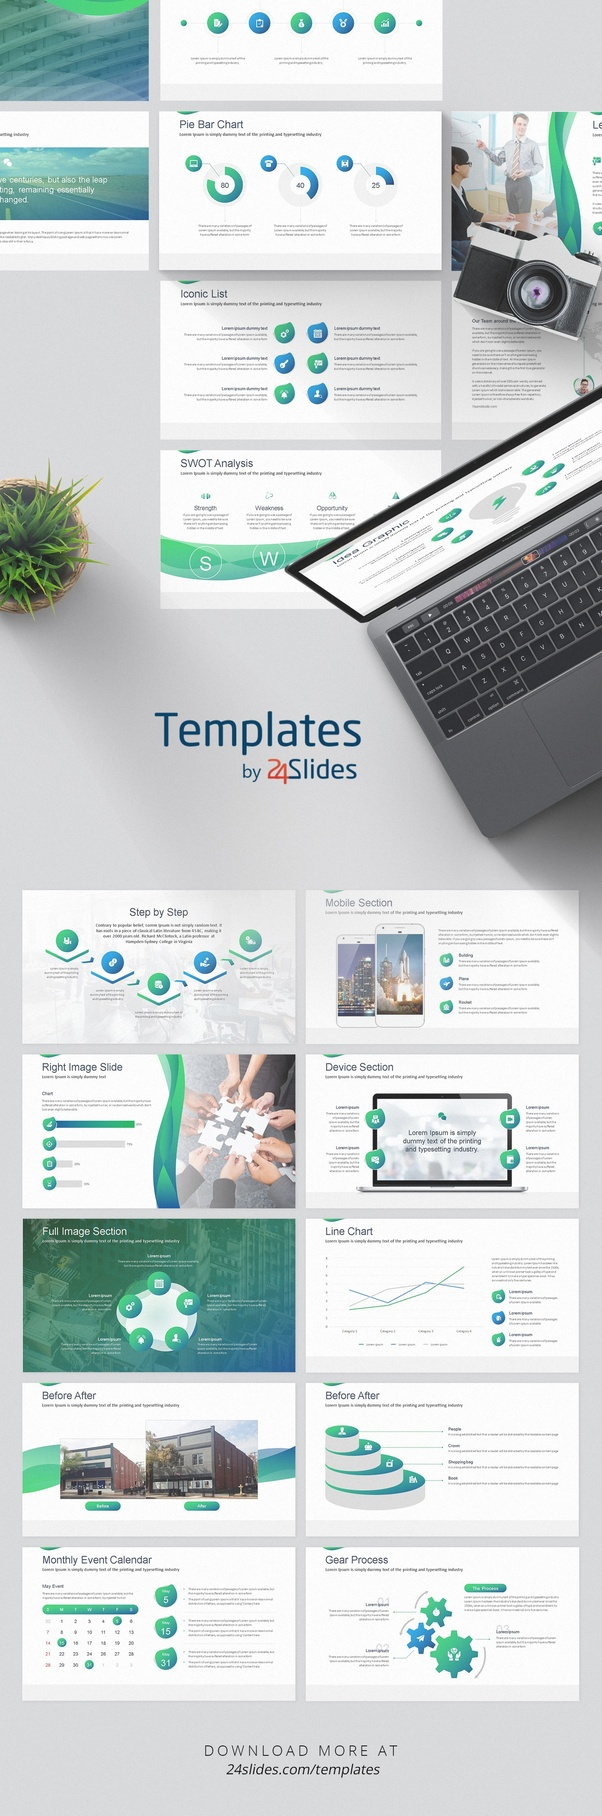 What Is The Best Source For Microsoft Powerpoint Templates Quora